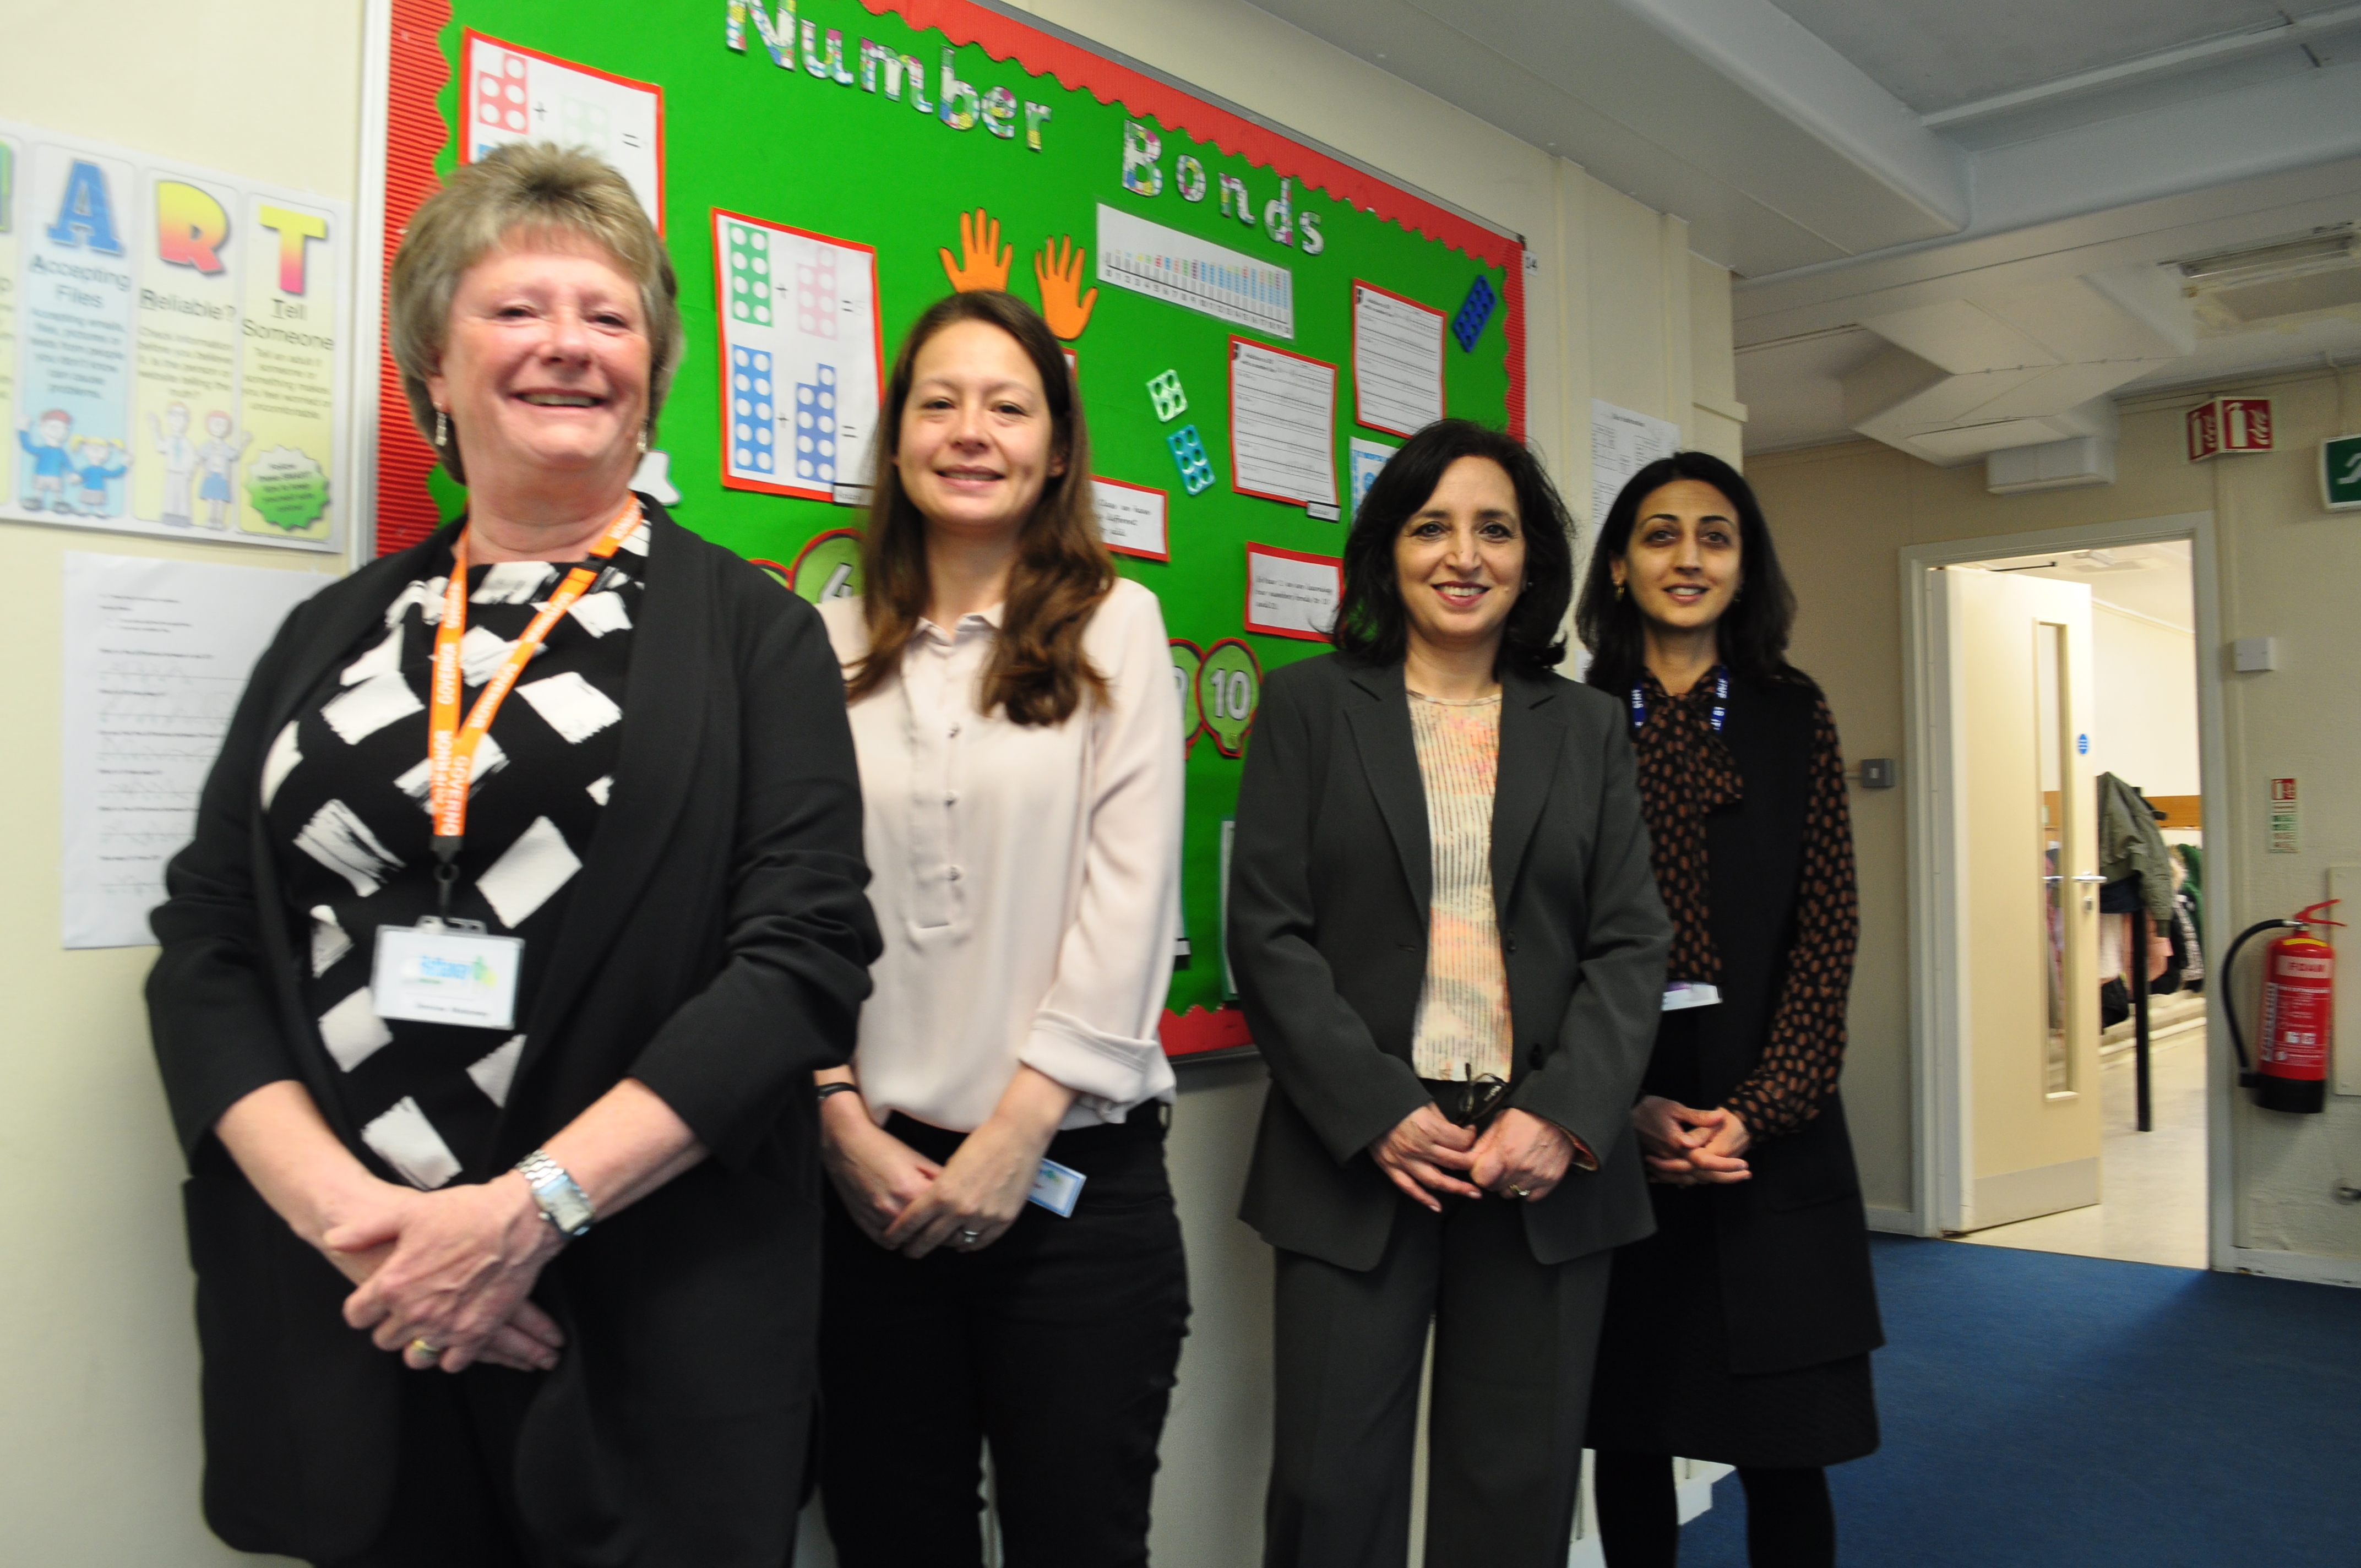 Hathaway Primary School governors and head with Councillor Rai